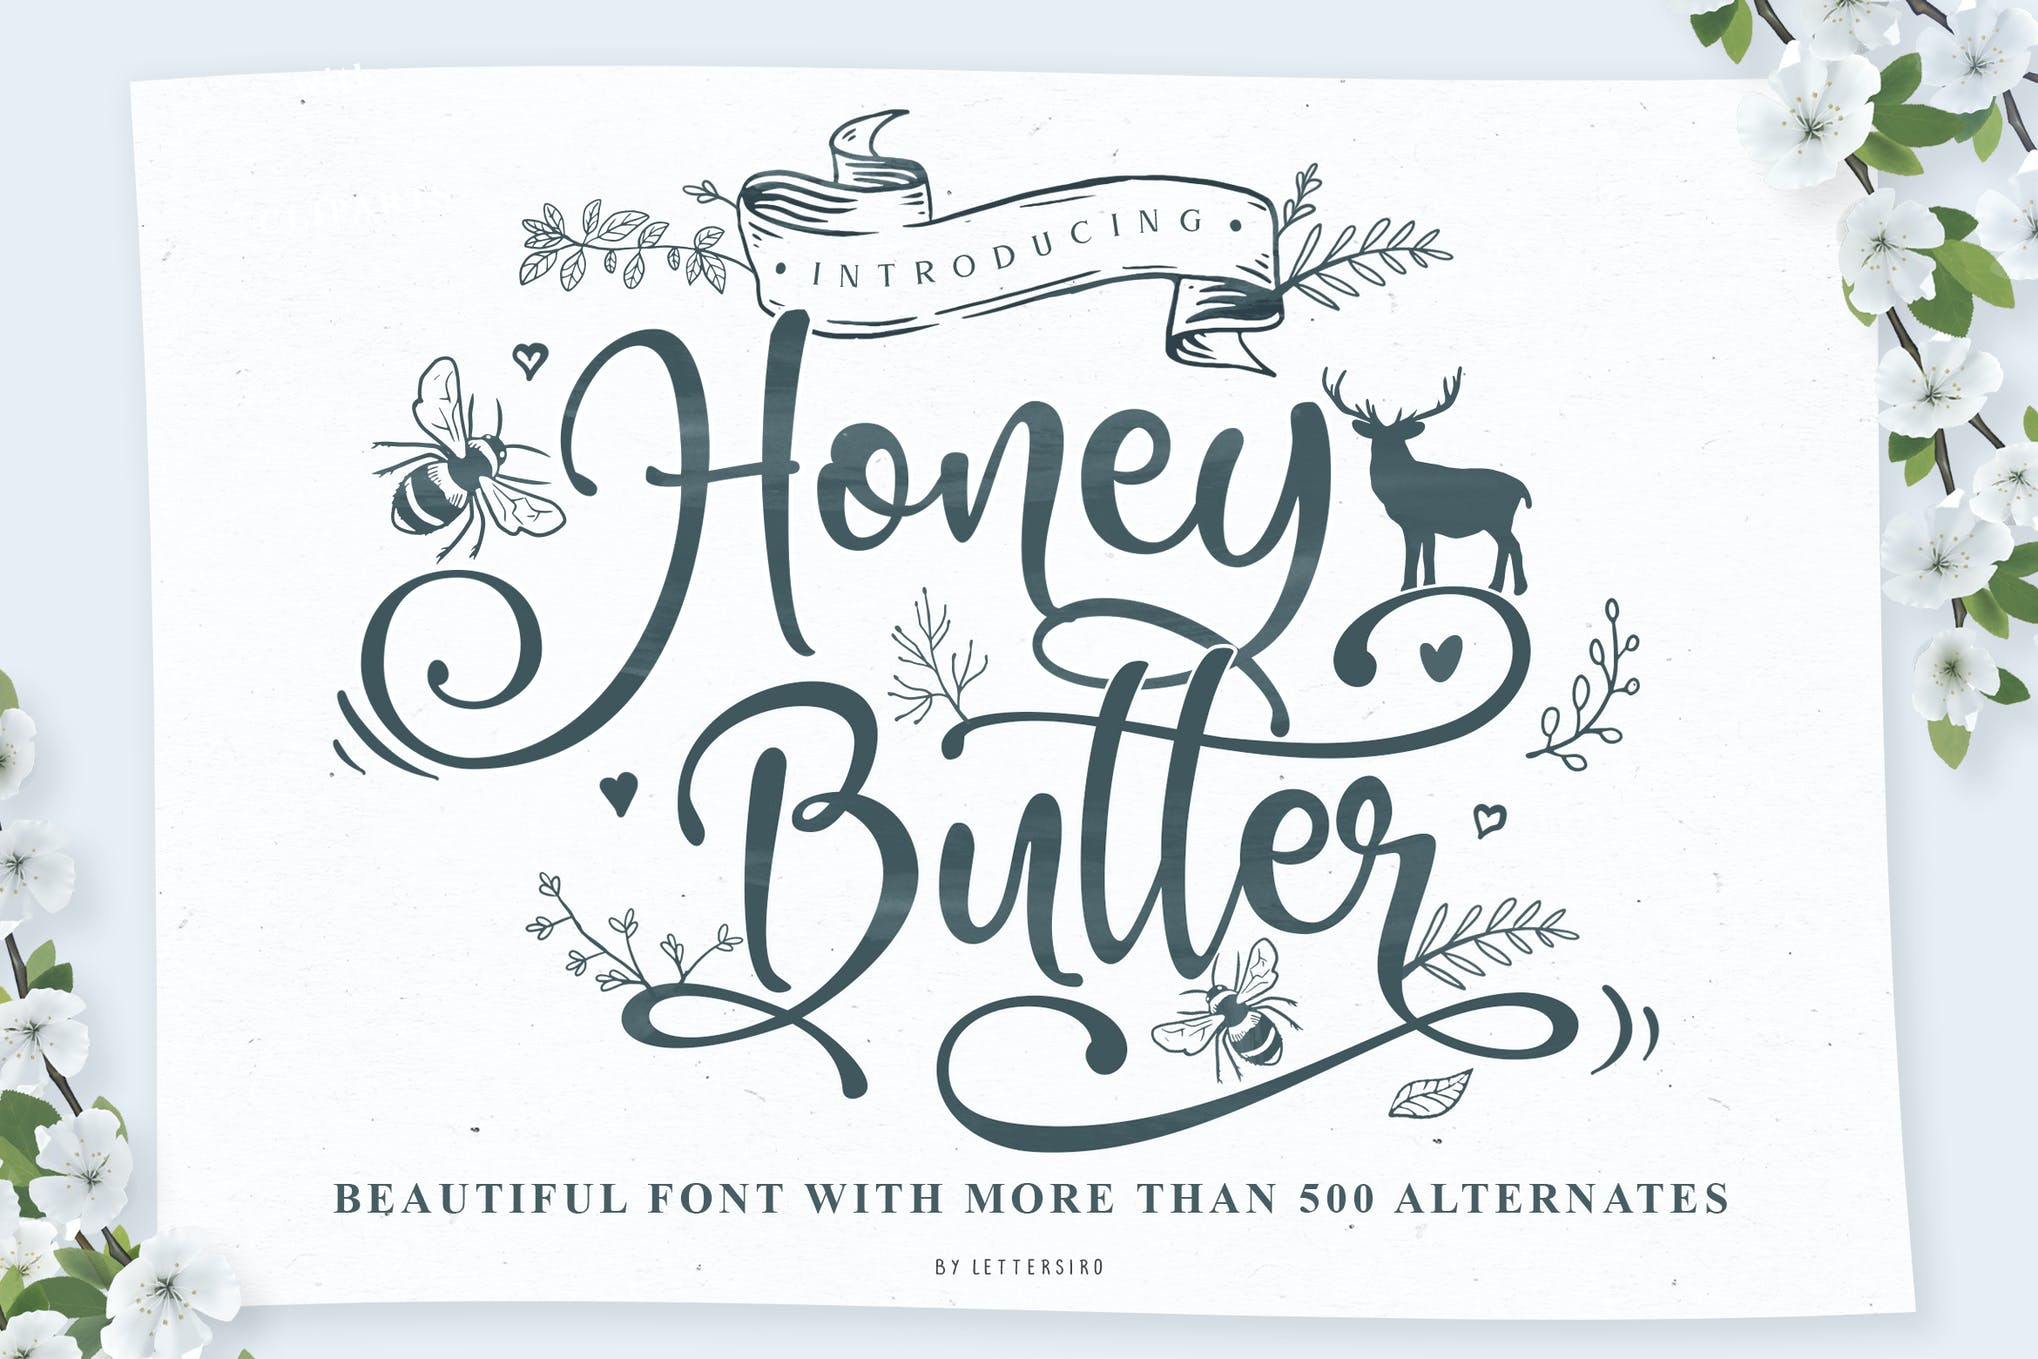 Honey Butter Beautiful Font